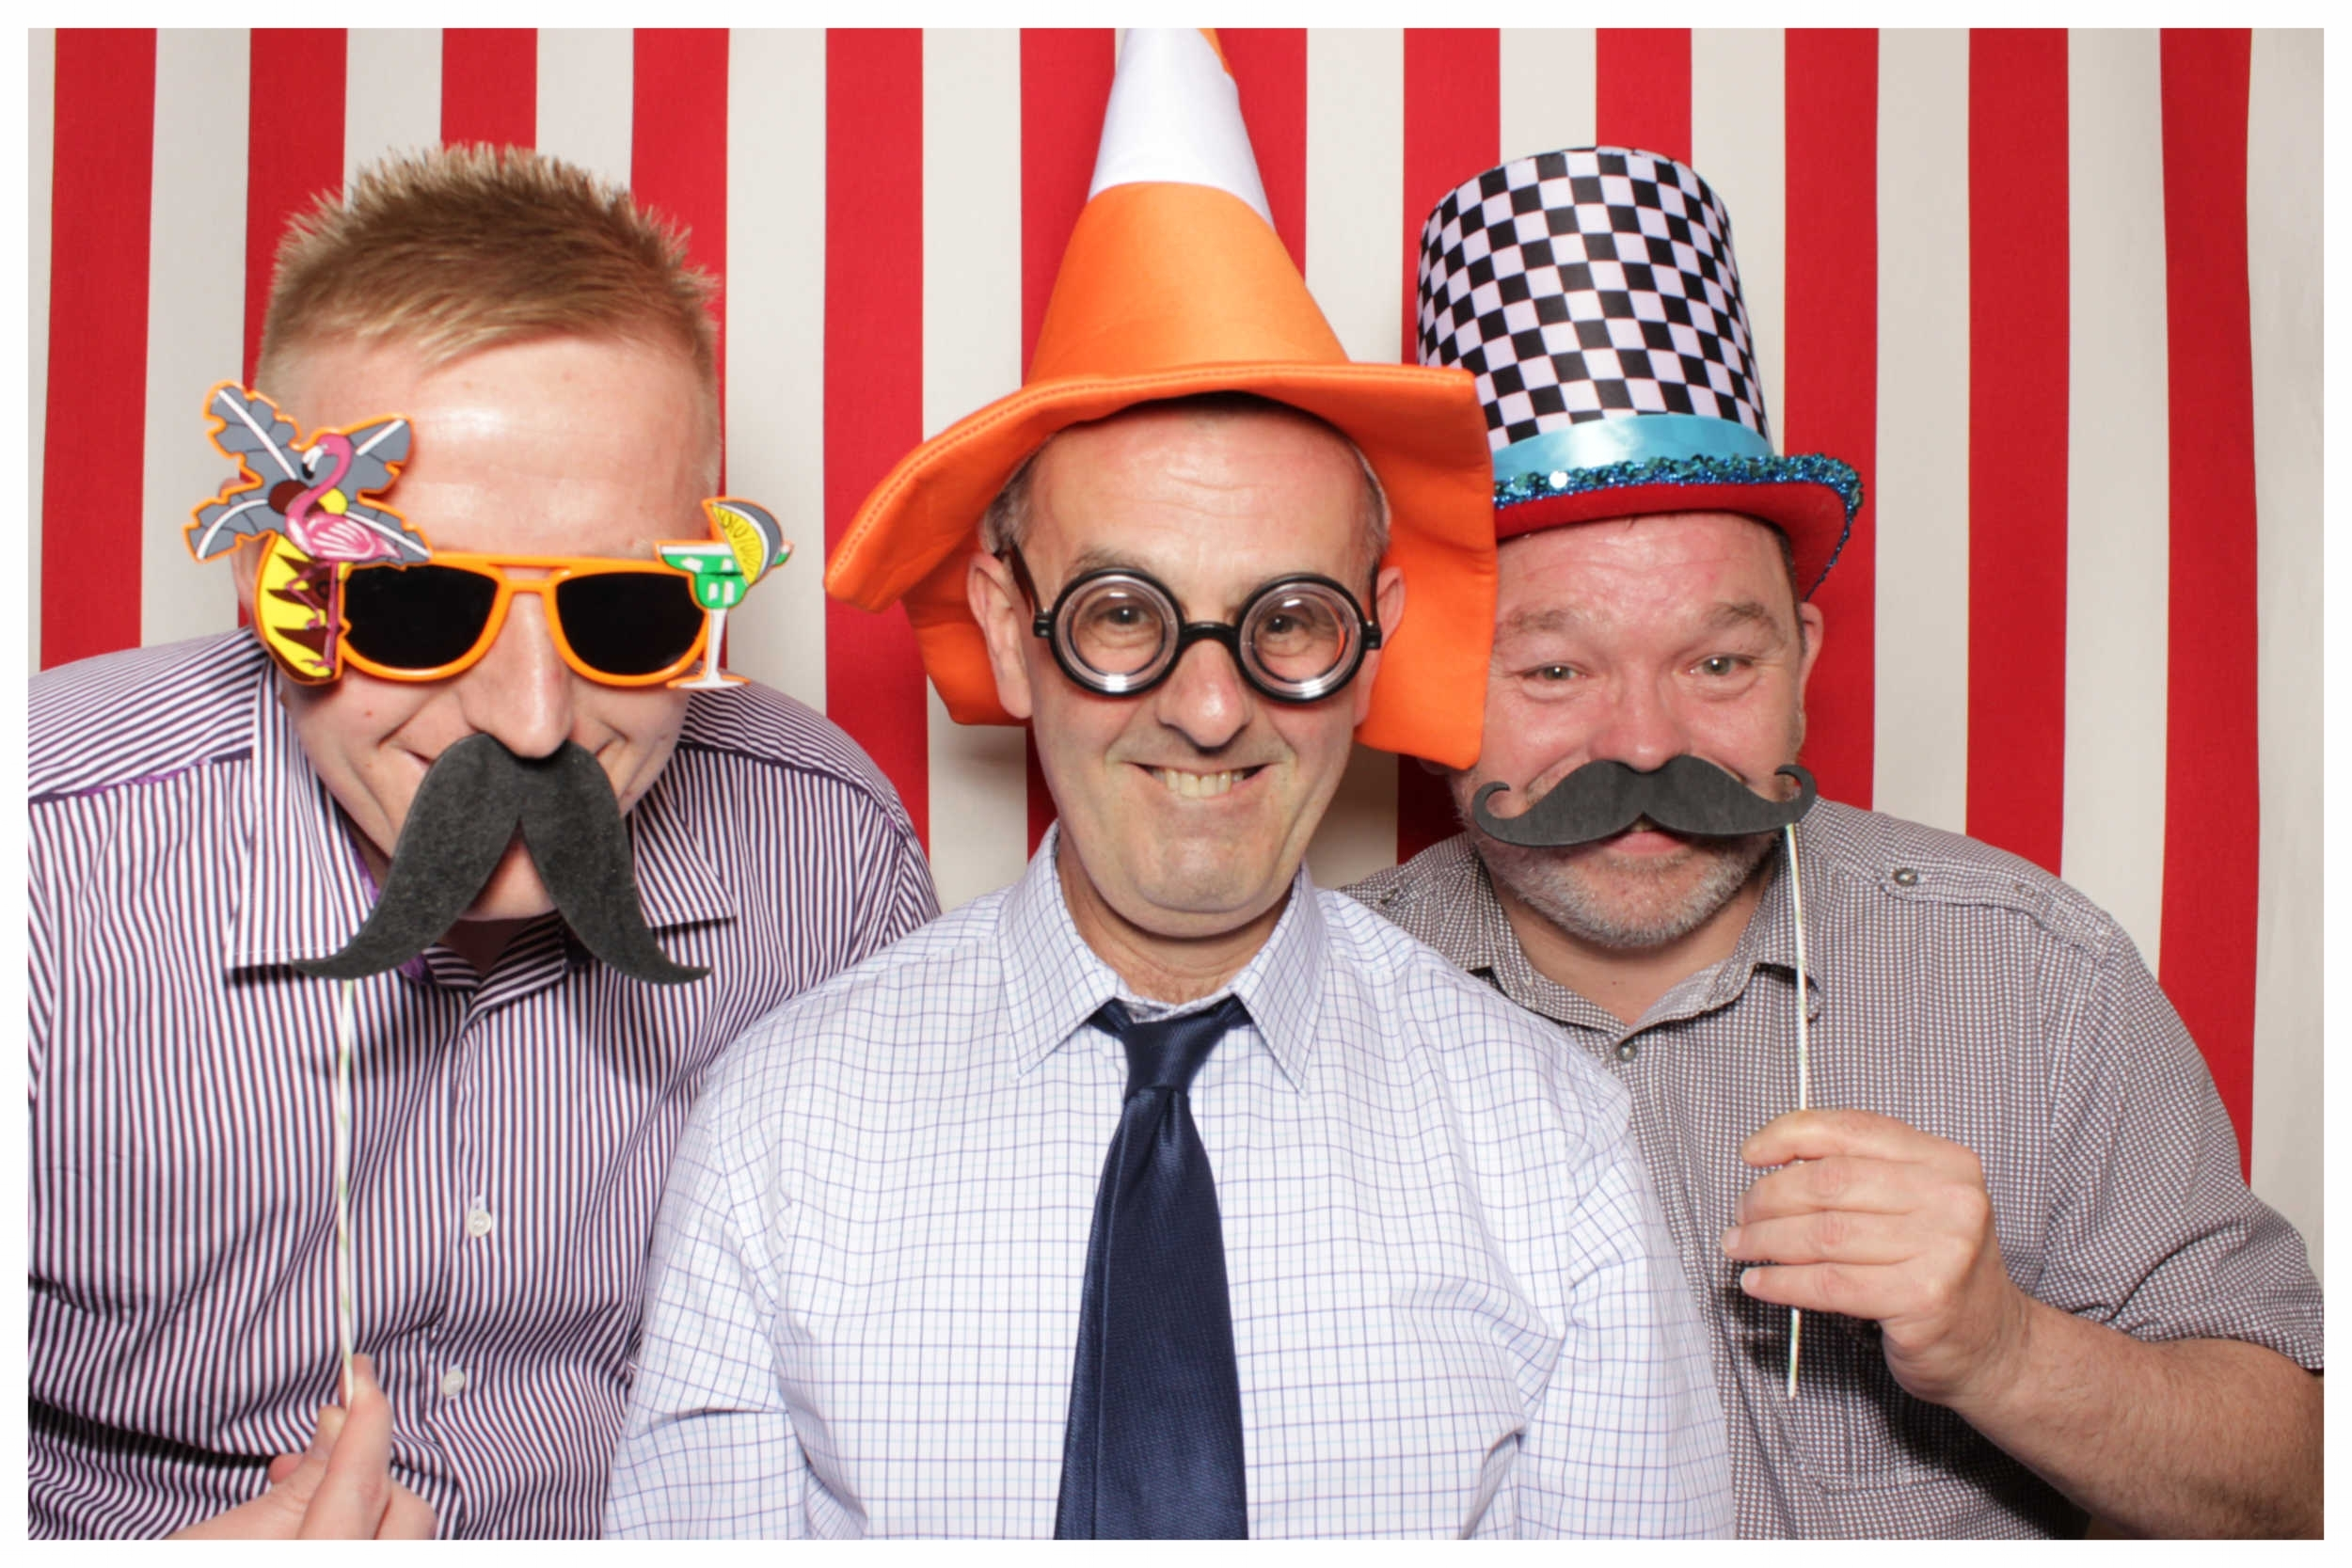 SnapStation - Charlotte and Ben wedding photo booth 6.jpg